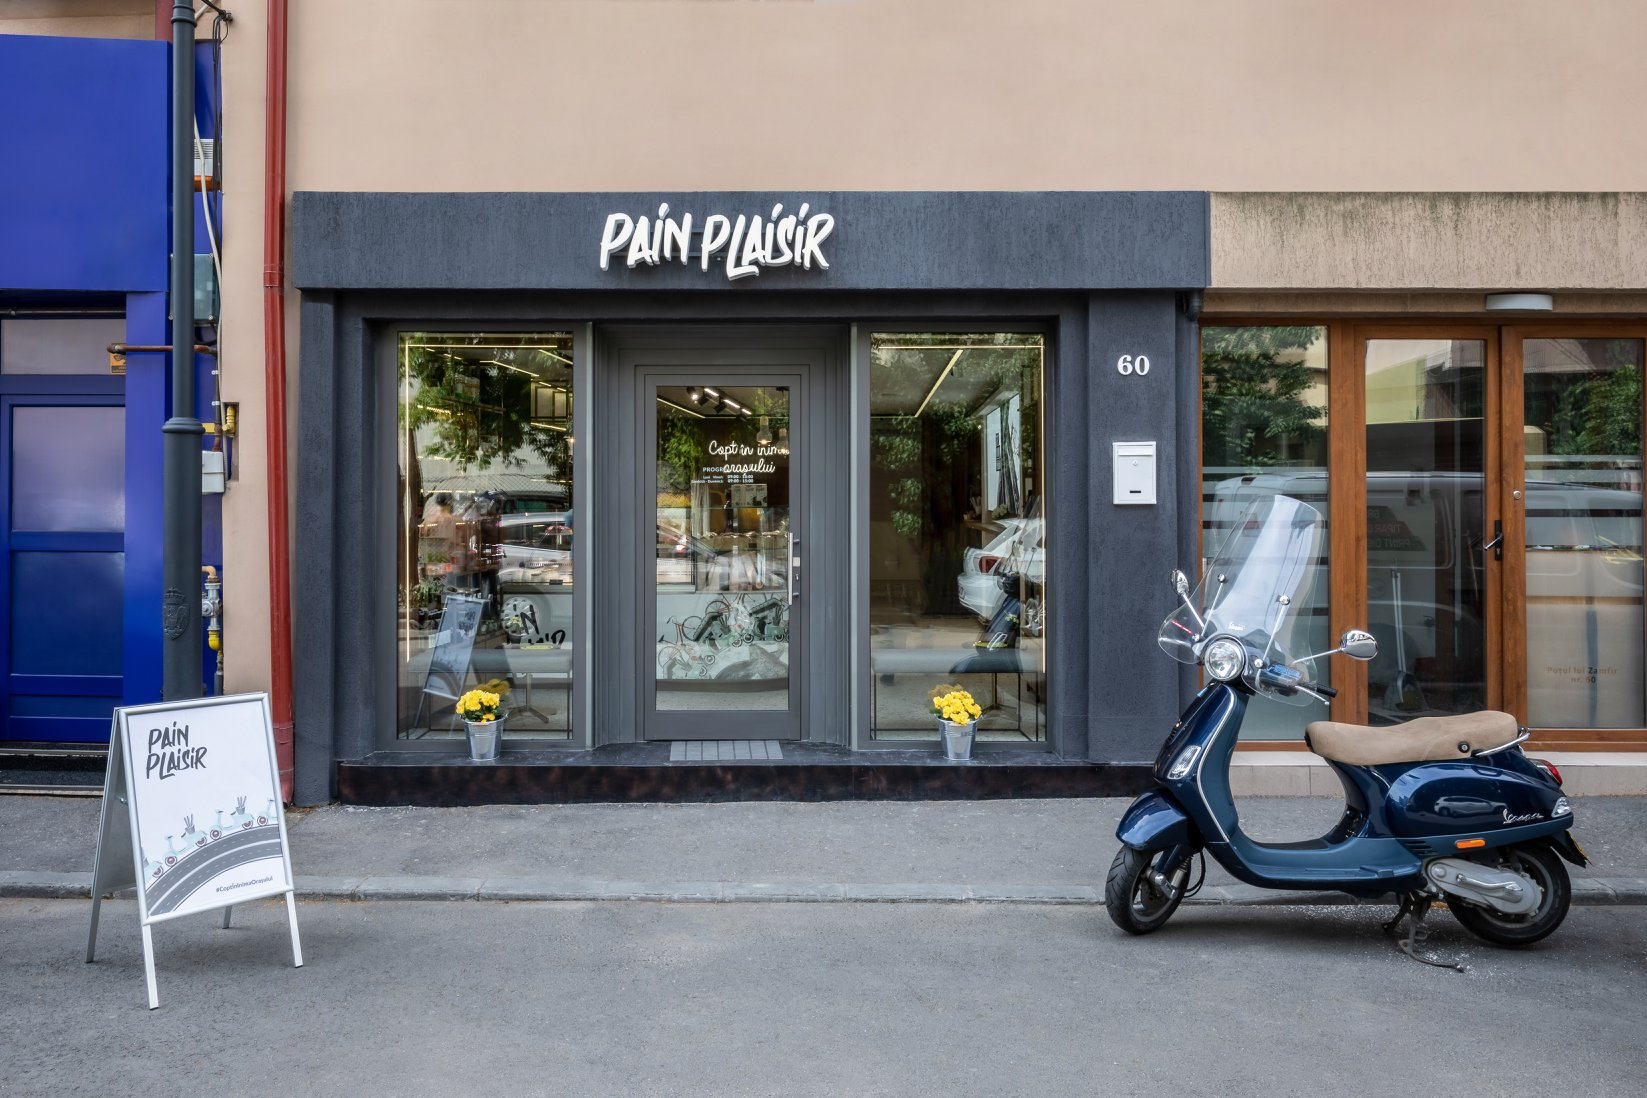 WOPA and Pain Plaisir create a collage between bread and city